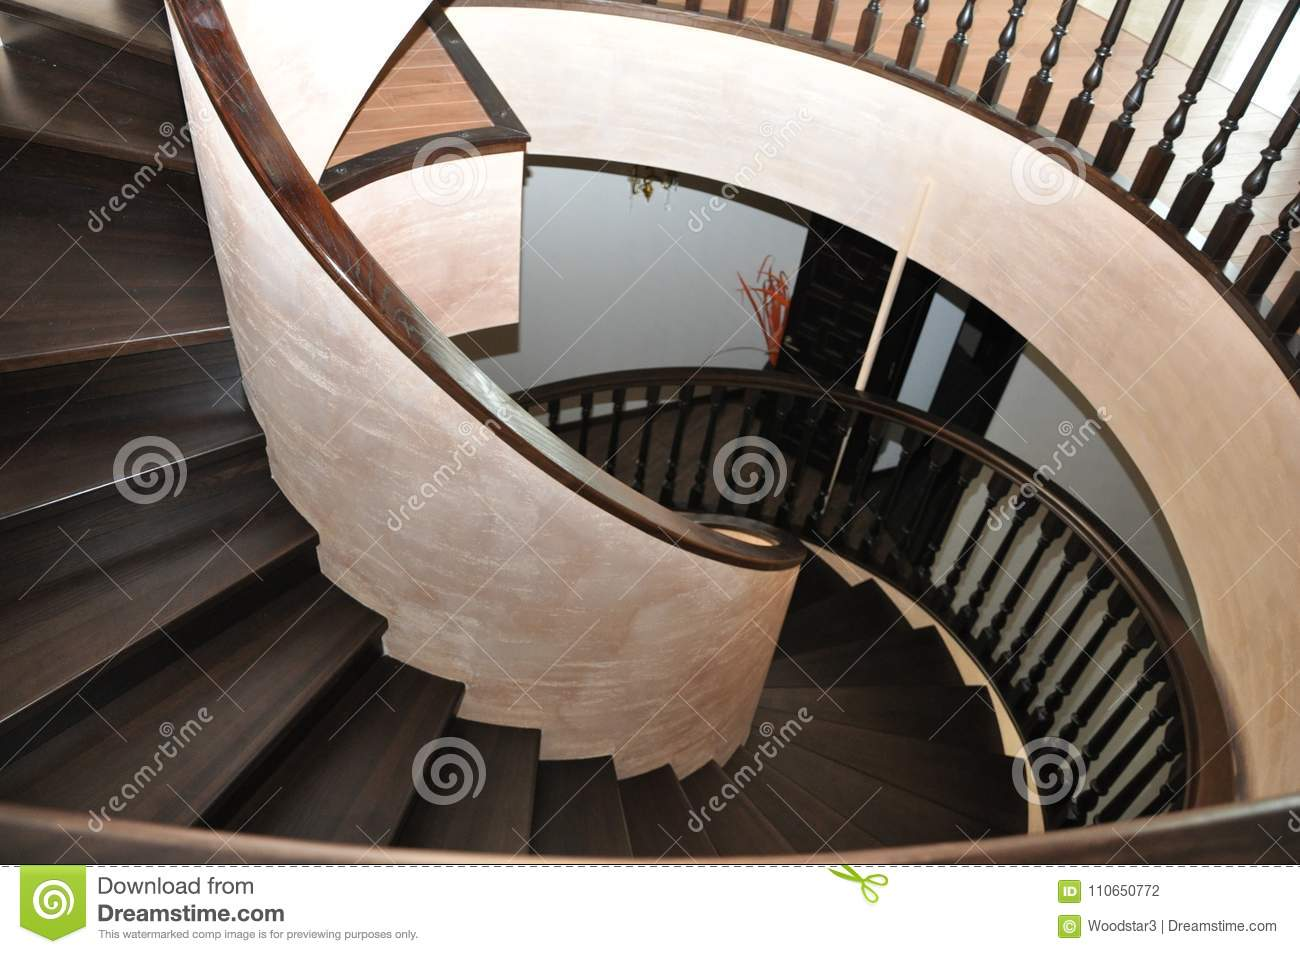 Download Modern Stylish Spiral Staircase In A Chic House. Original Author`s  Work.